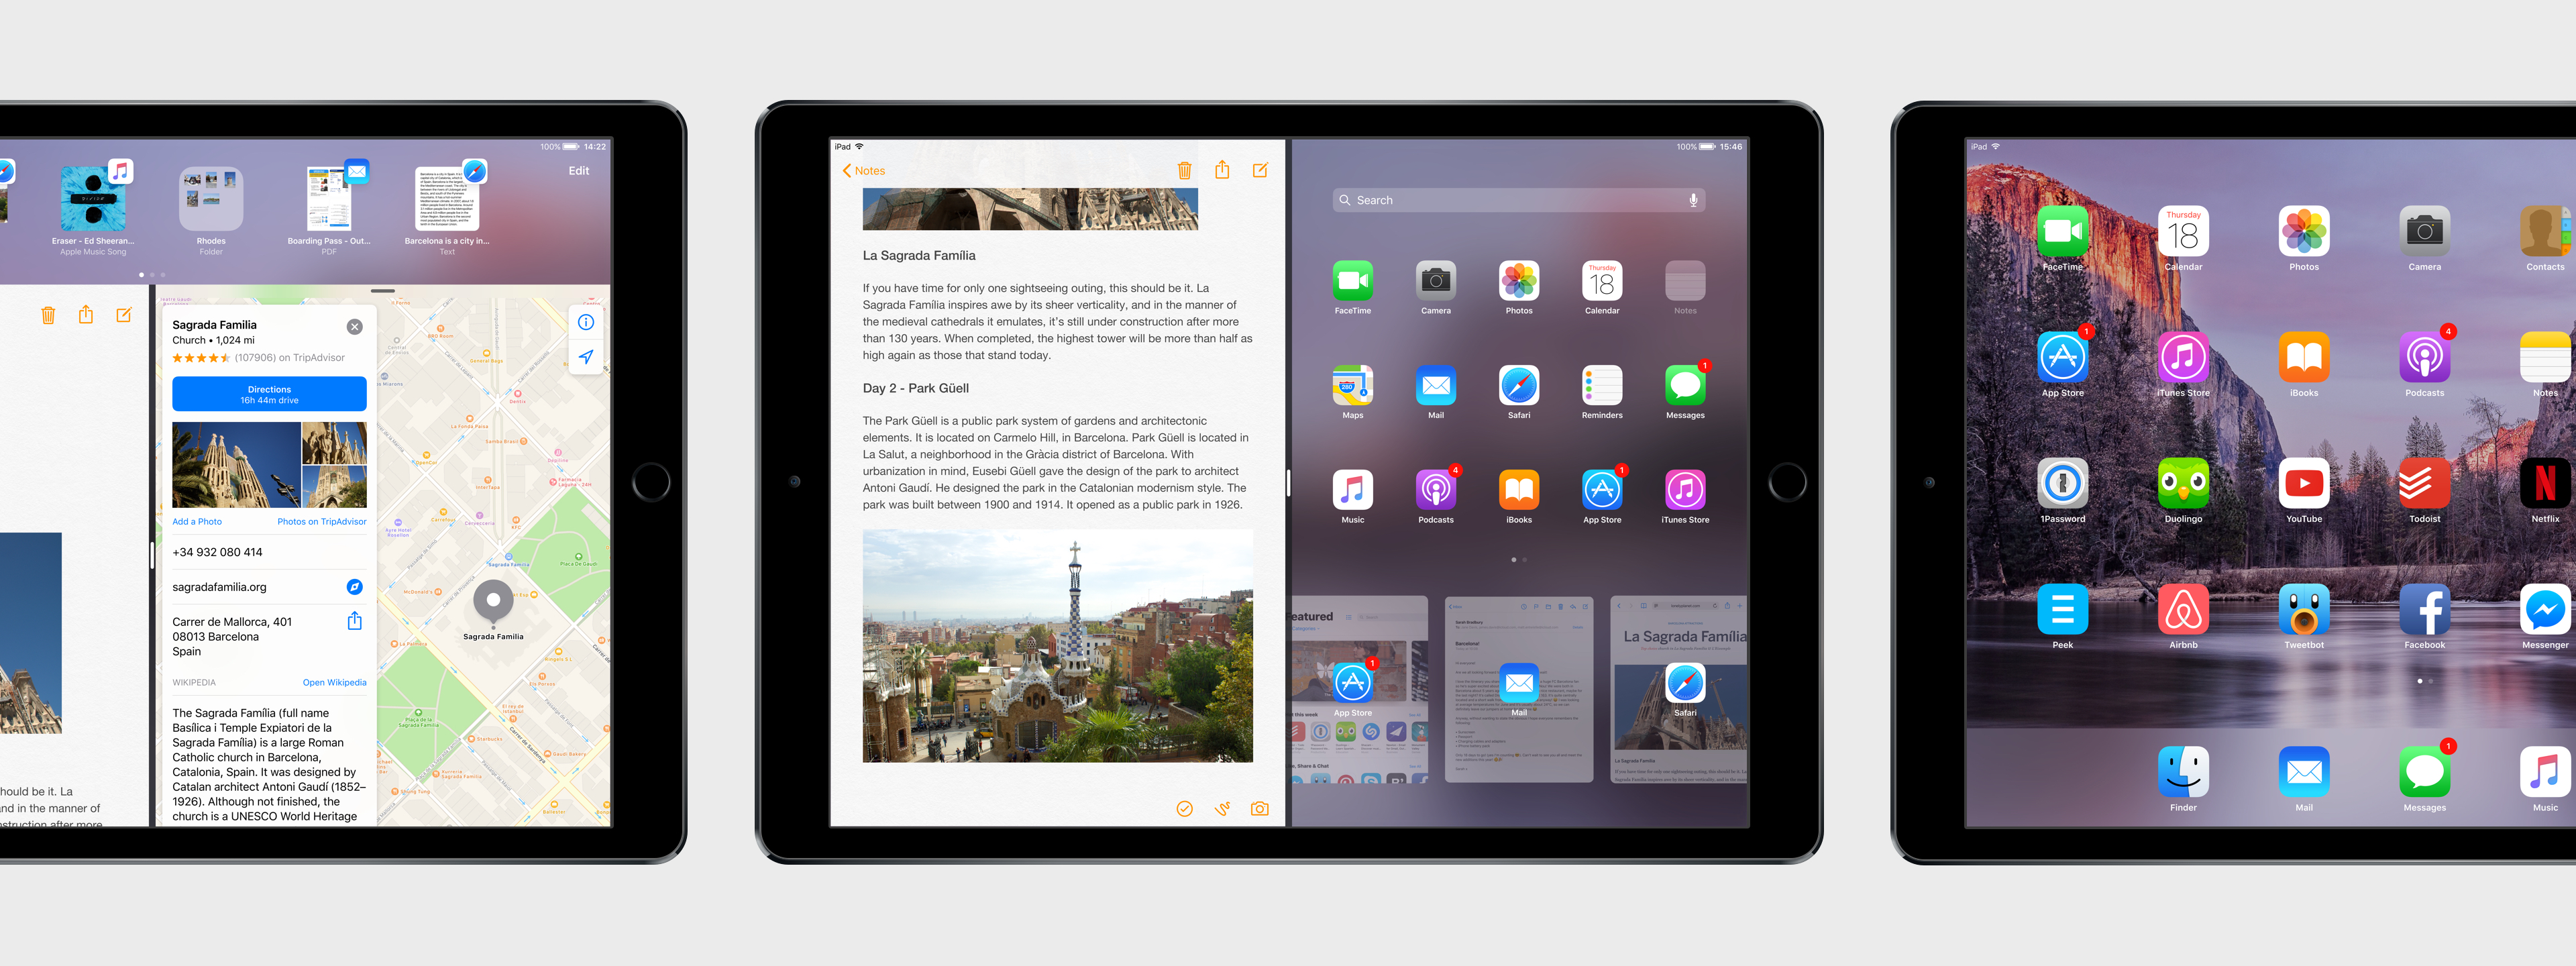 iOS 11: iPad Wishes and Concept Video - MacStories